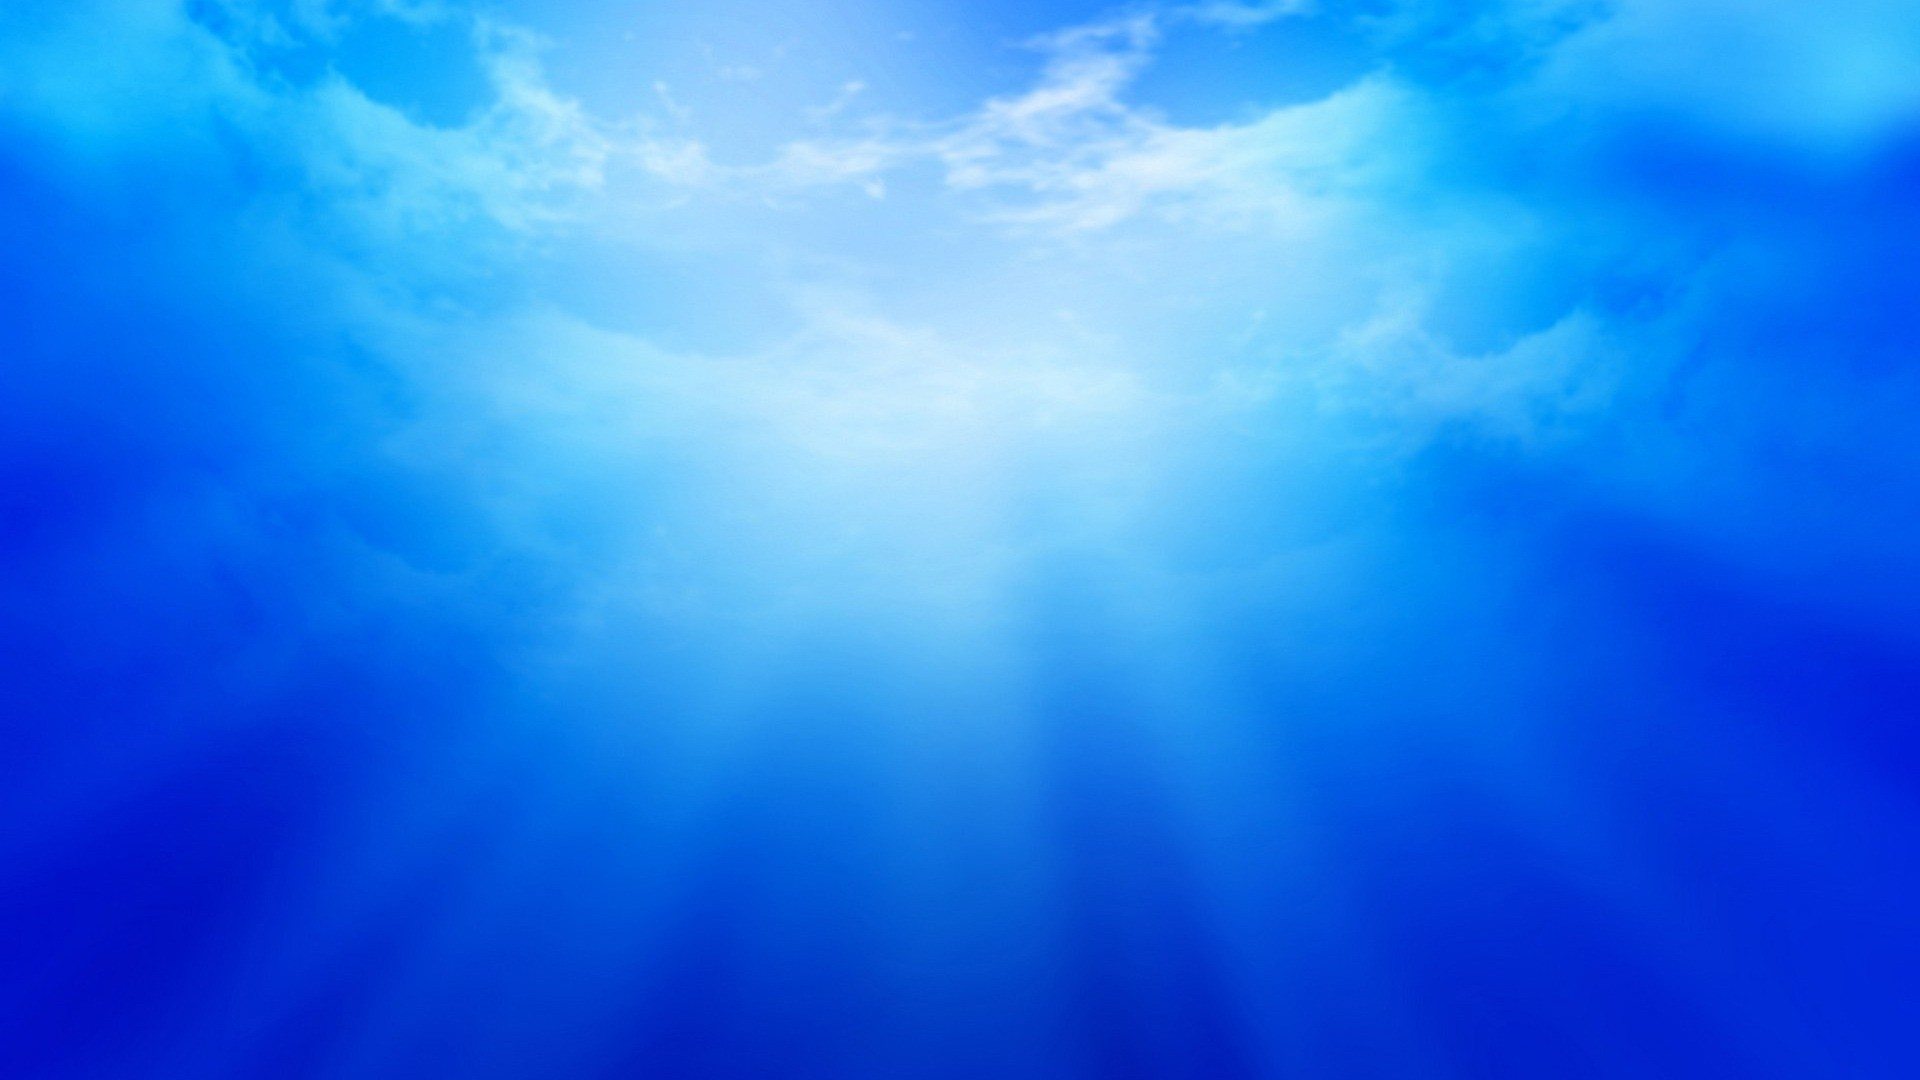 webpage backgrounds free landscape | 75 Free HD Abstract Backgrounds · Blue  Sky …